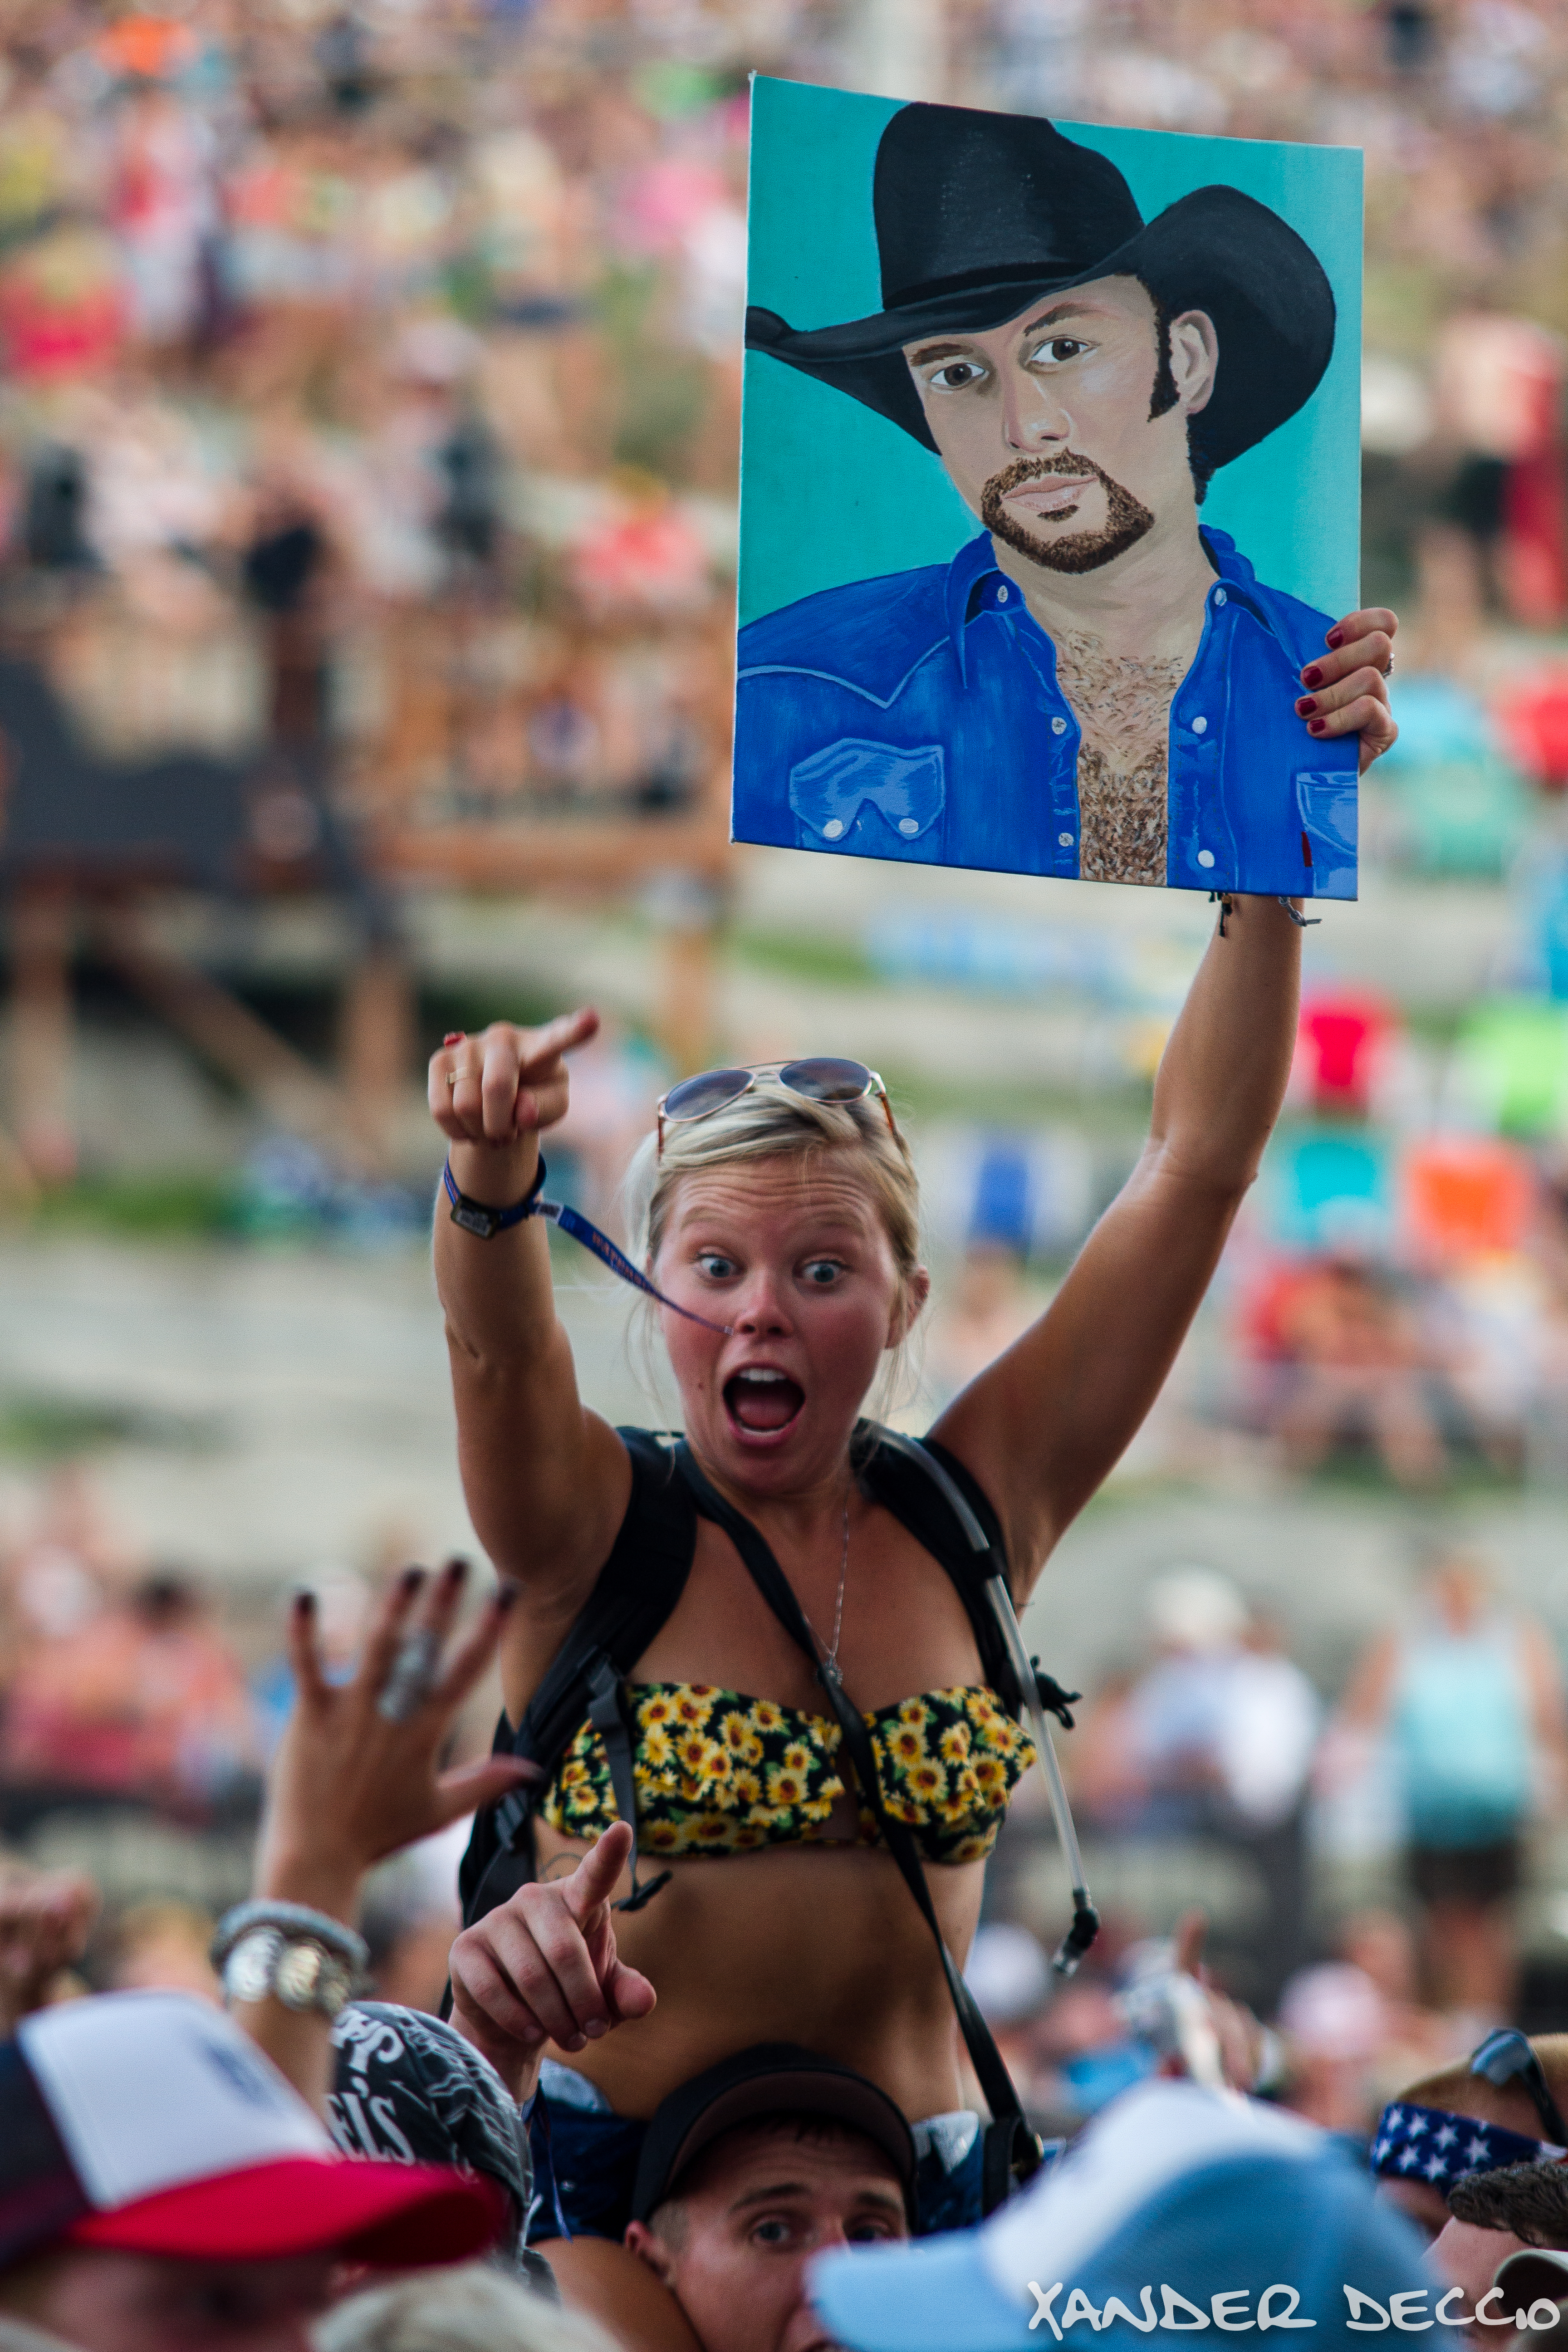 Fans at Watershed 2014 (Photo by Xander Deccio)